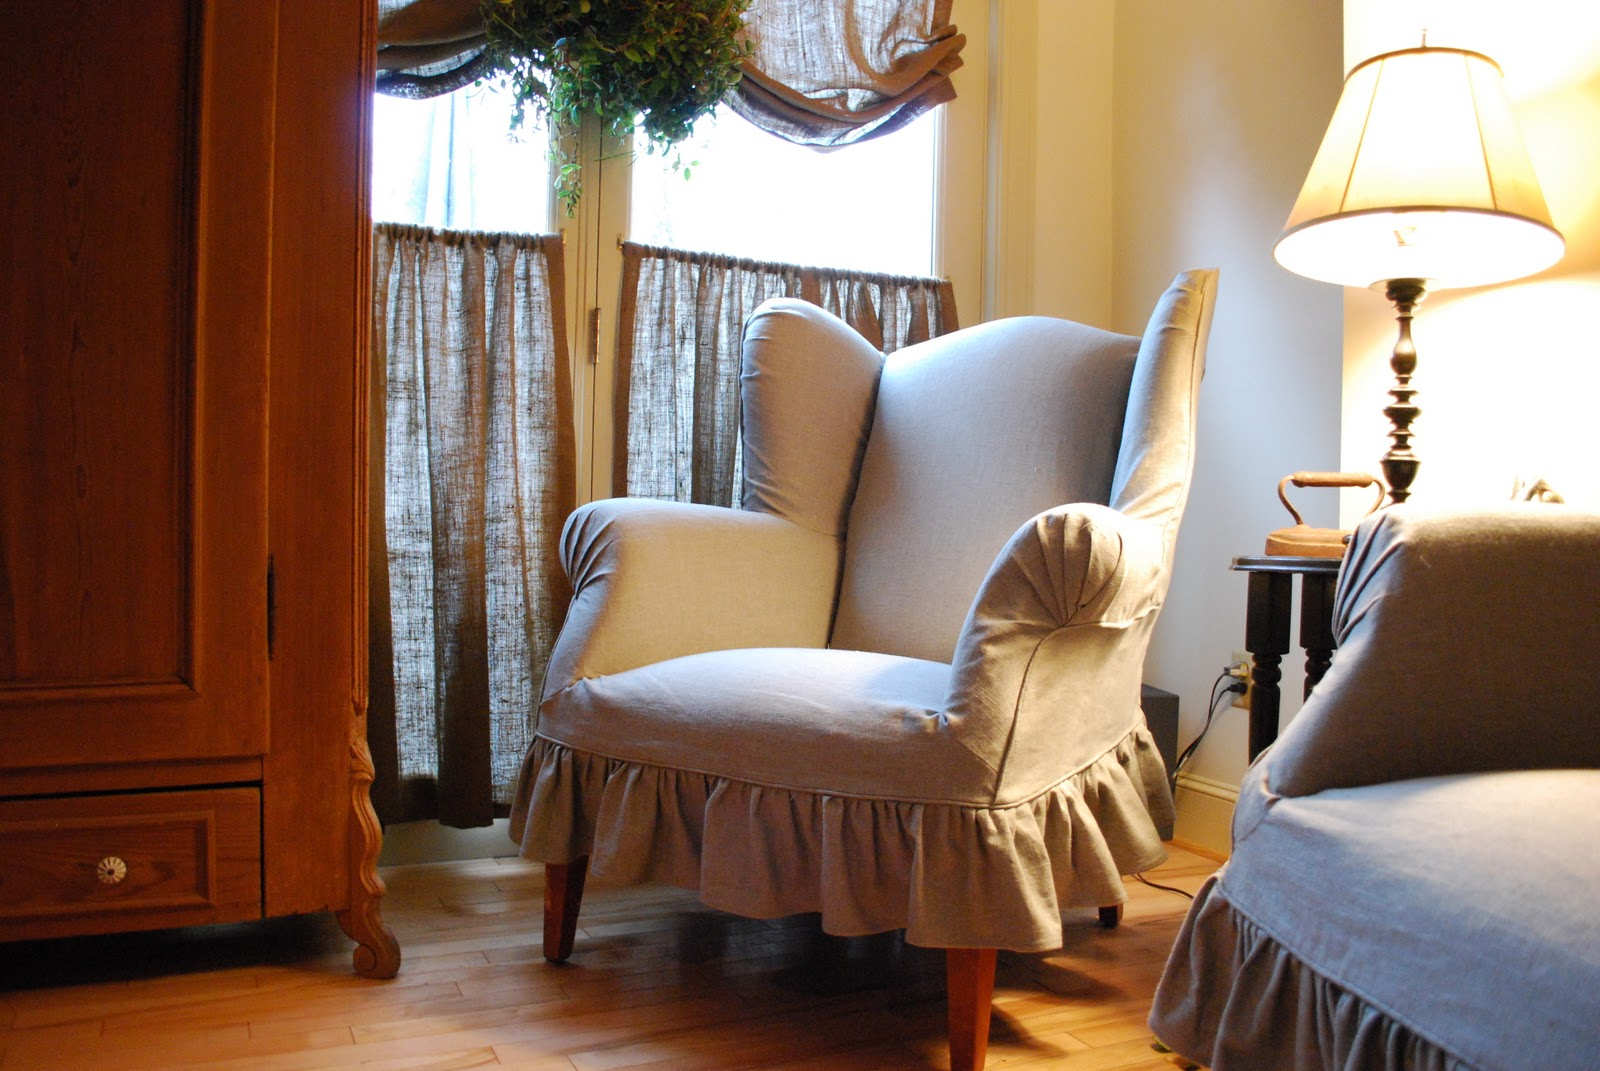 New England Style: Linen Slipcovers for Wingback Chairs